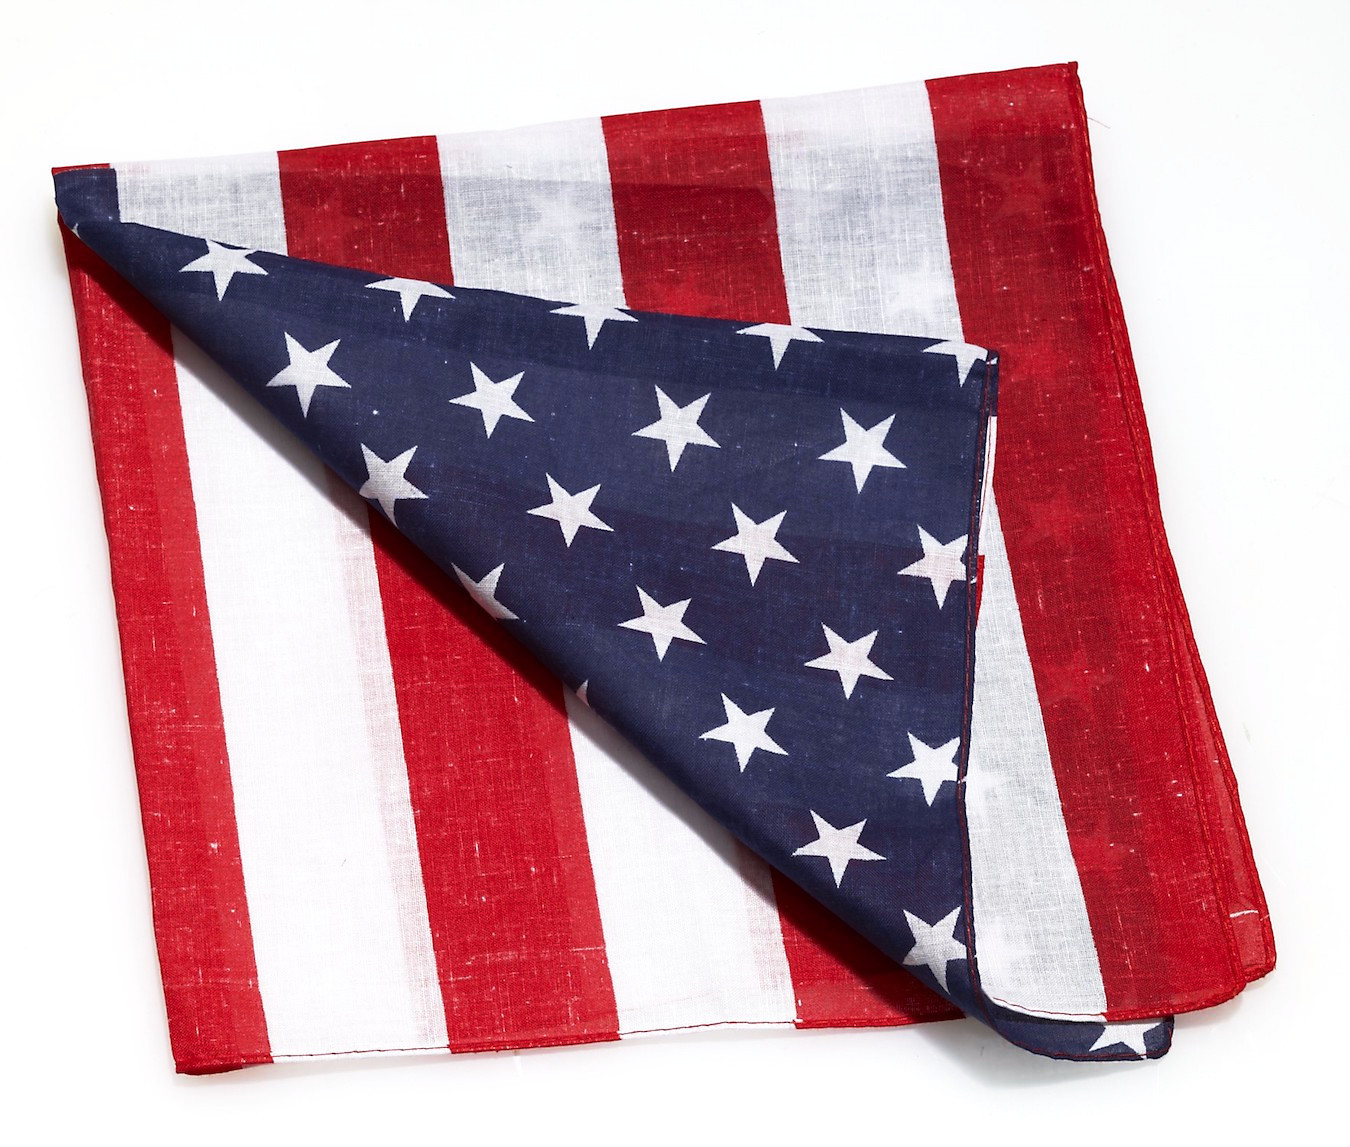 BANDANA Pack of 6 in Red White Blue American Flag Design 100% Cotton